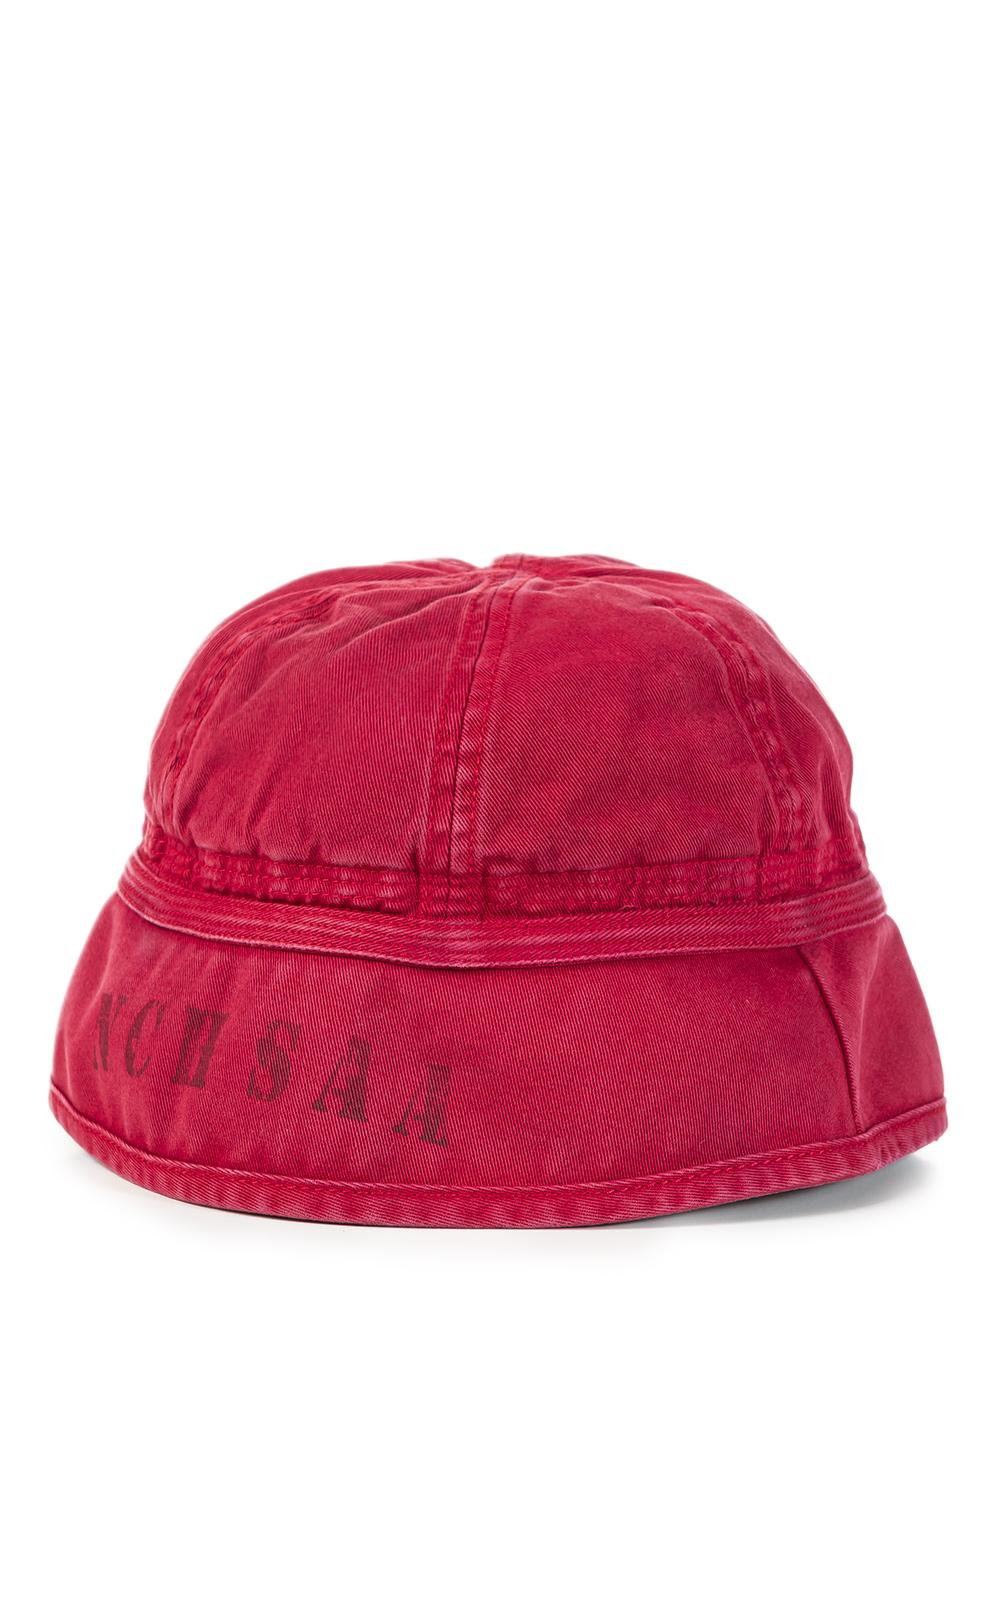 d14a1a8687be Lyst - Nigel Cabourn Lybro Drill Bucket Hat Red in Red for Men